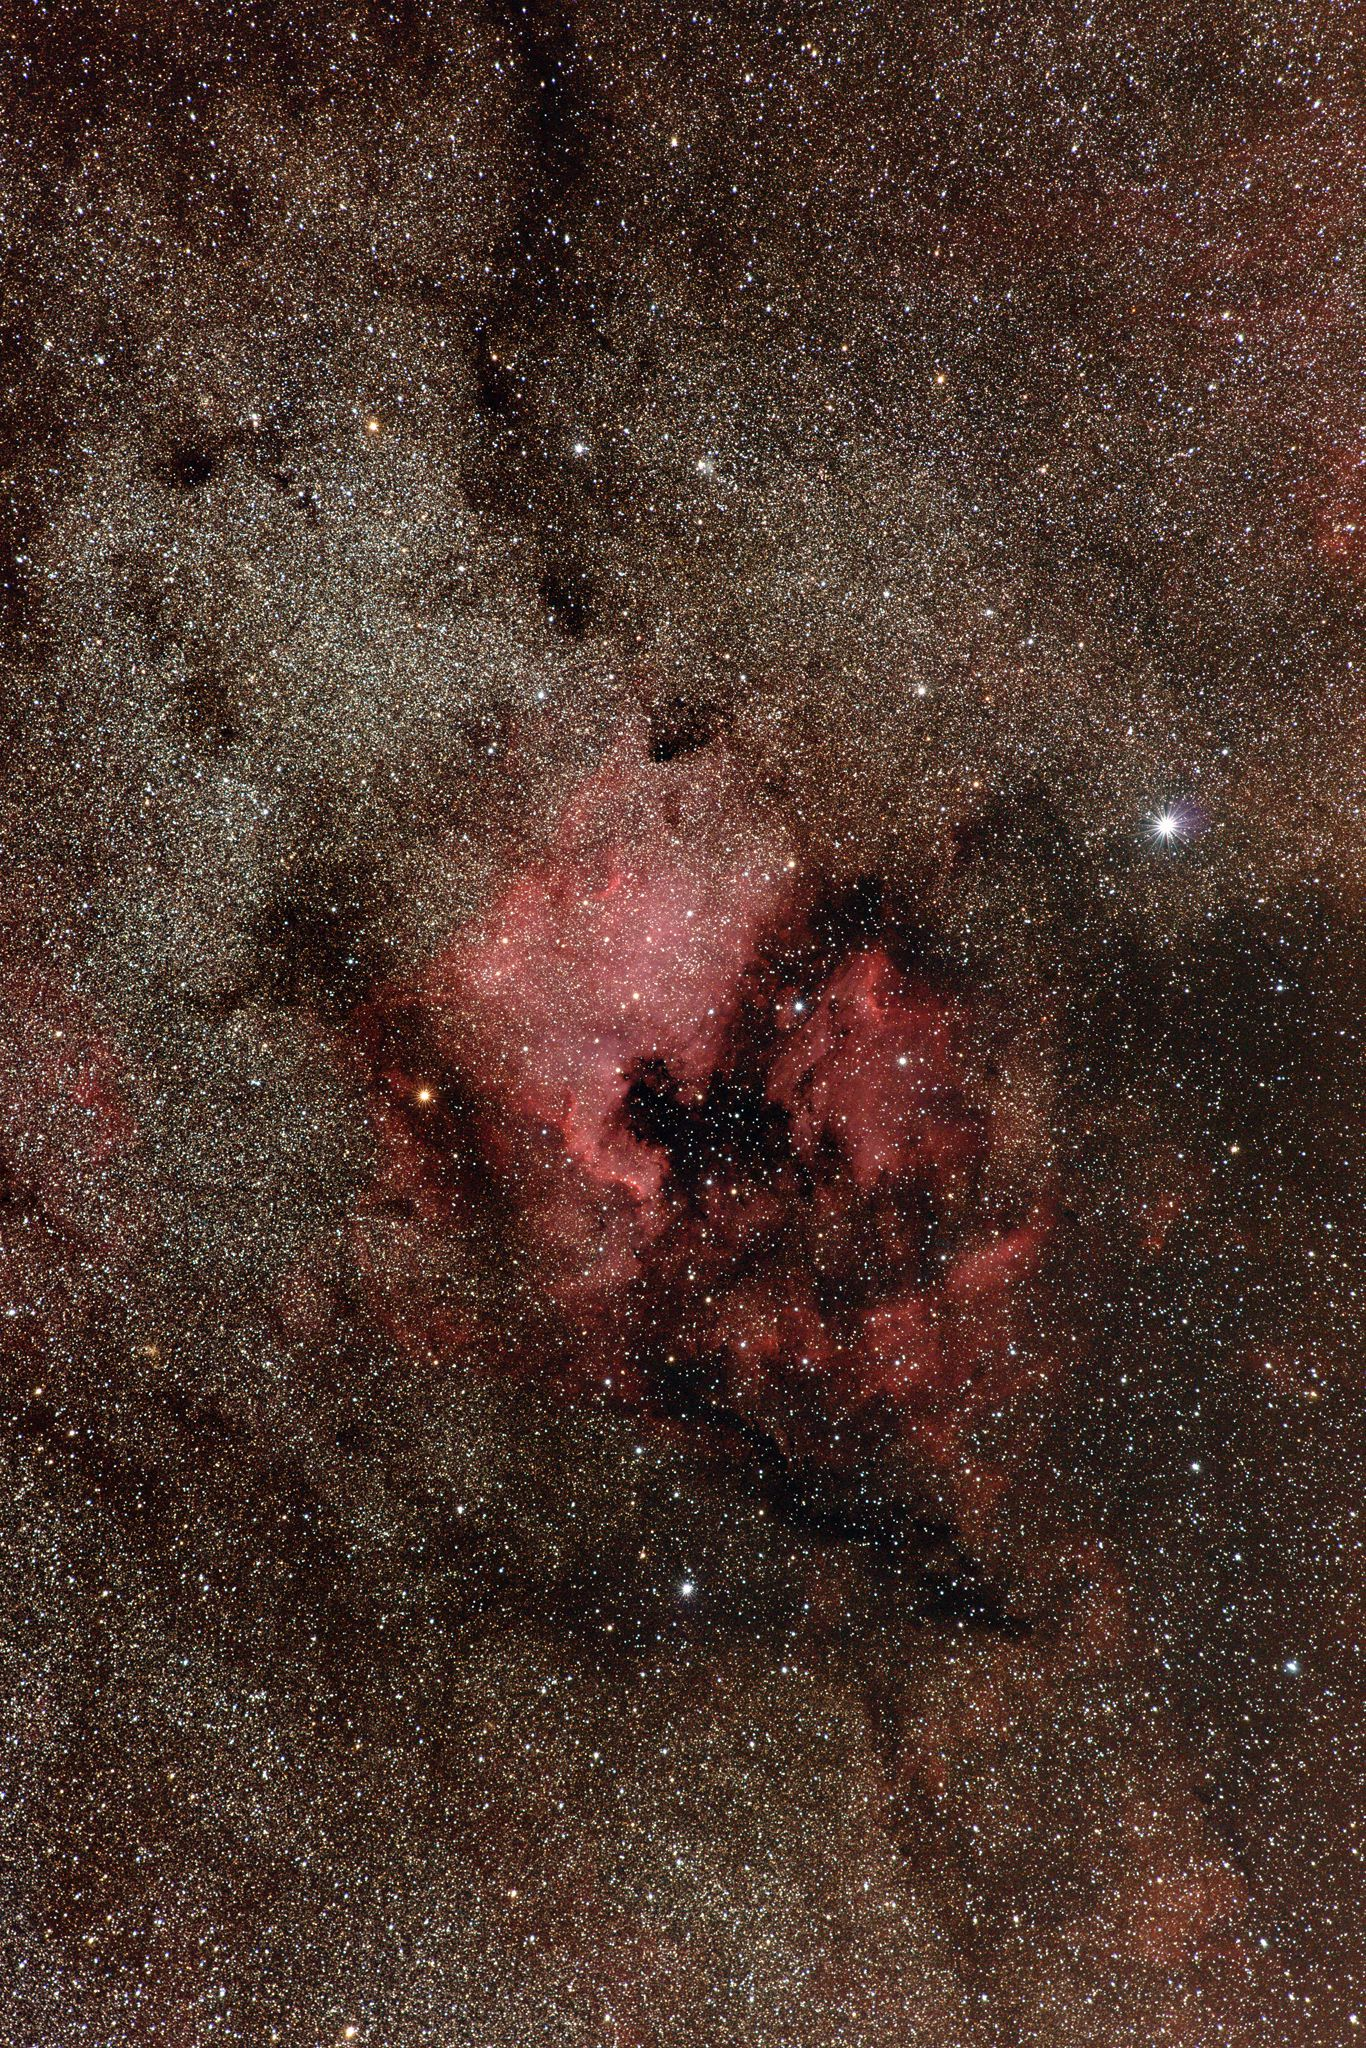 ngc7000-unfiltered-2048px.jpg